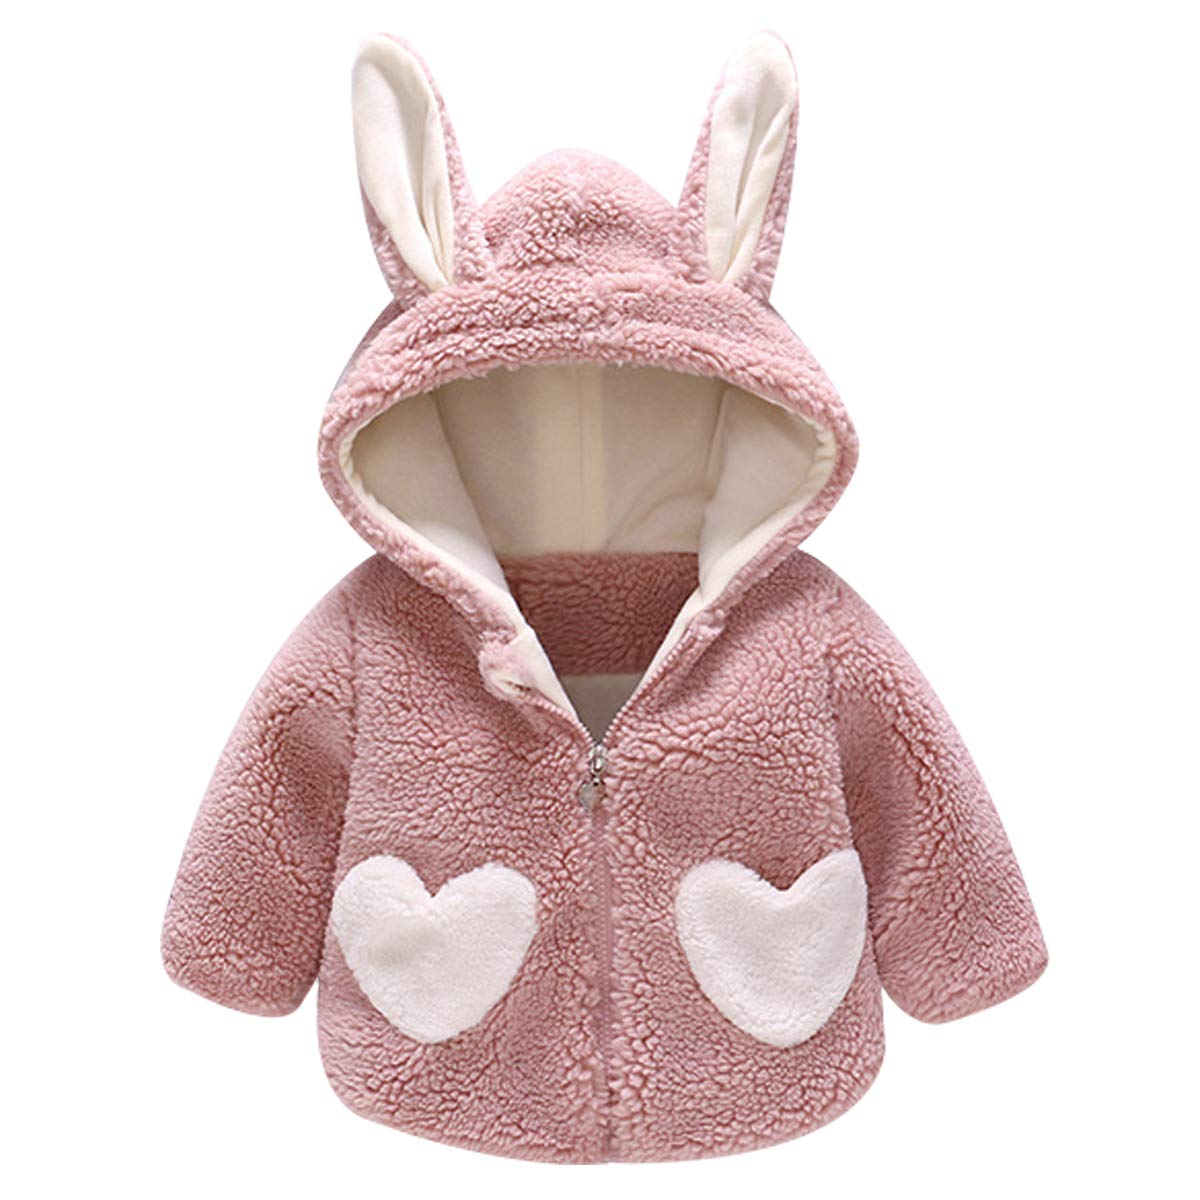 Kanodan Baby Girls Pretty Heart Fleece Jacket Winter Warm Pink Coat for Toddlers